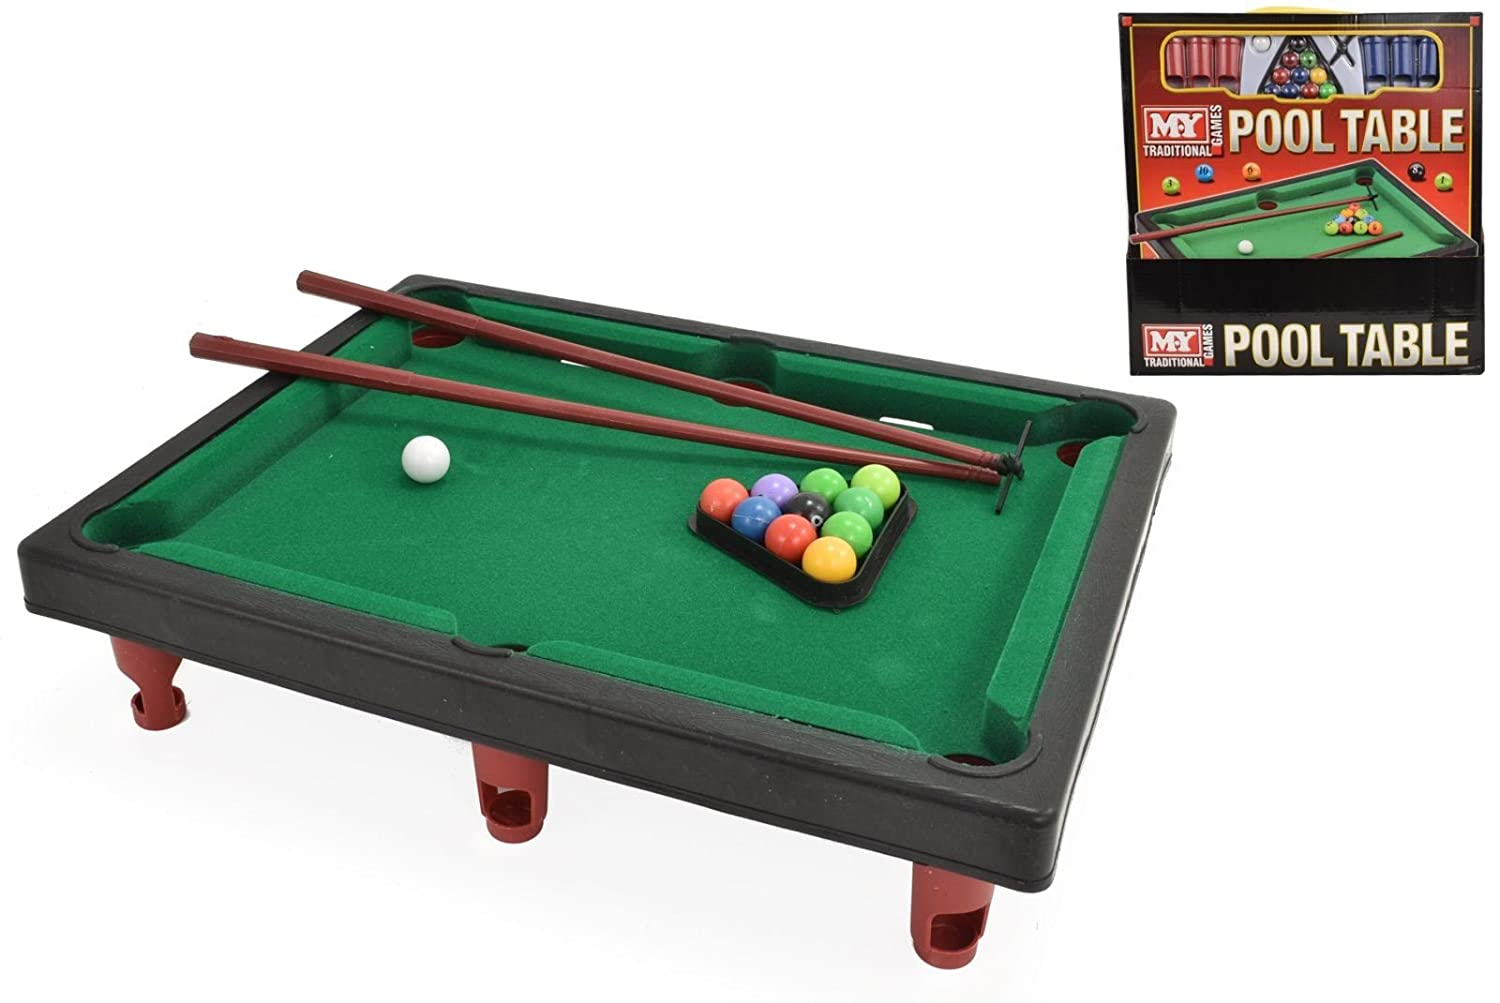 Amazoncom My Mini Tabletop Pool Snooker Table Game Set Toy - Buy my pool table